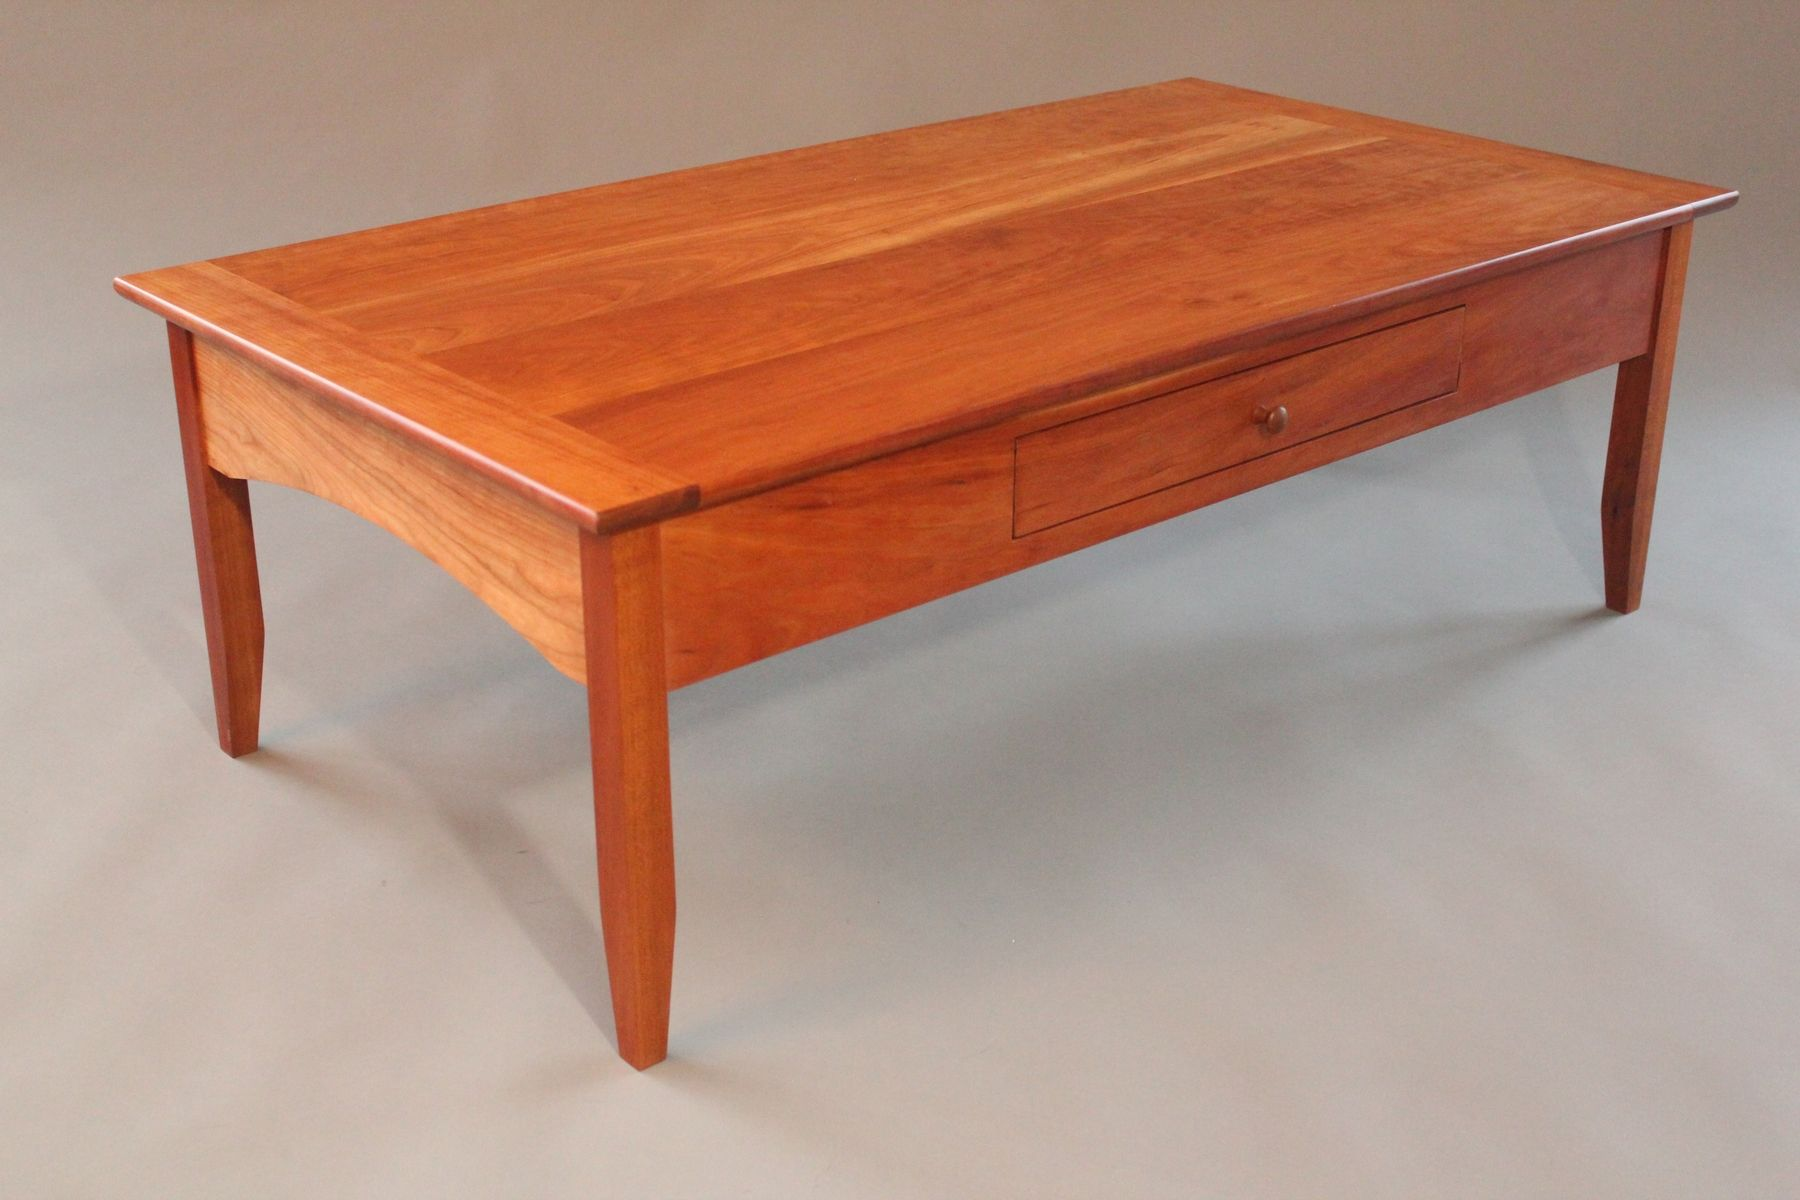 Handmade Cherry Coffee Table by Blue Spruce Joinery